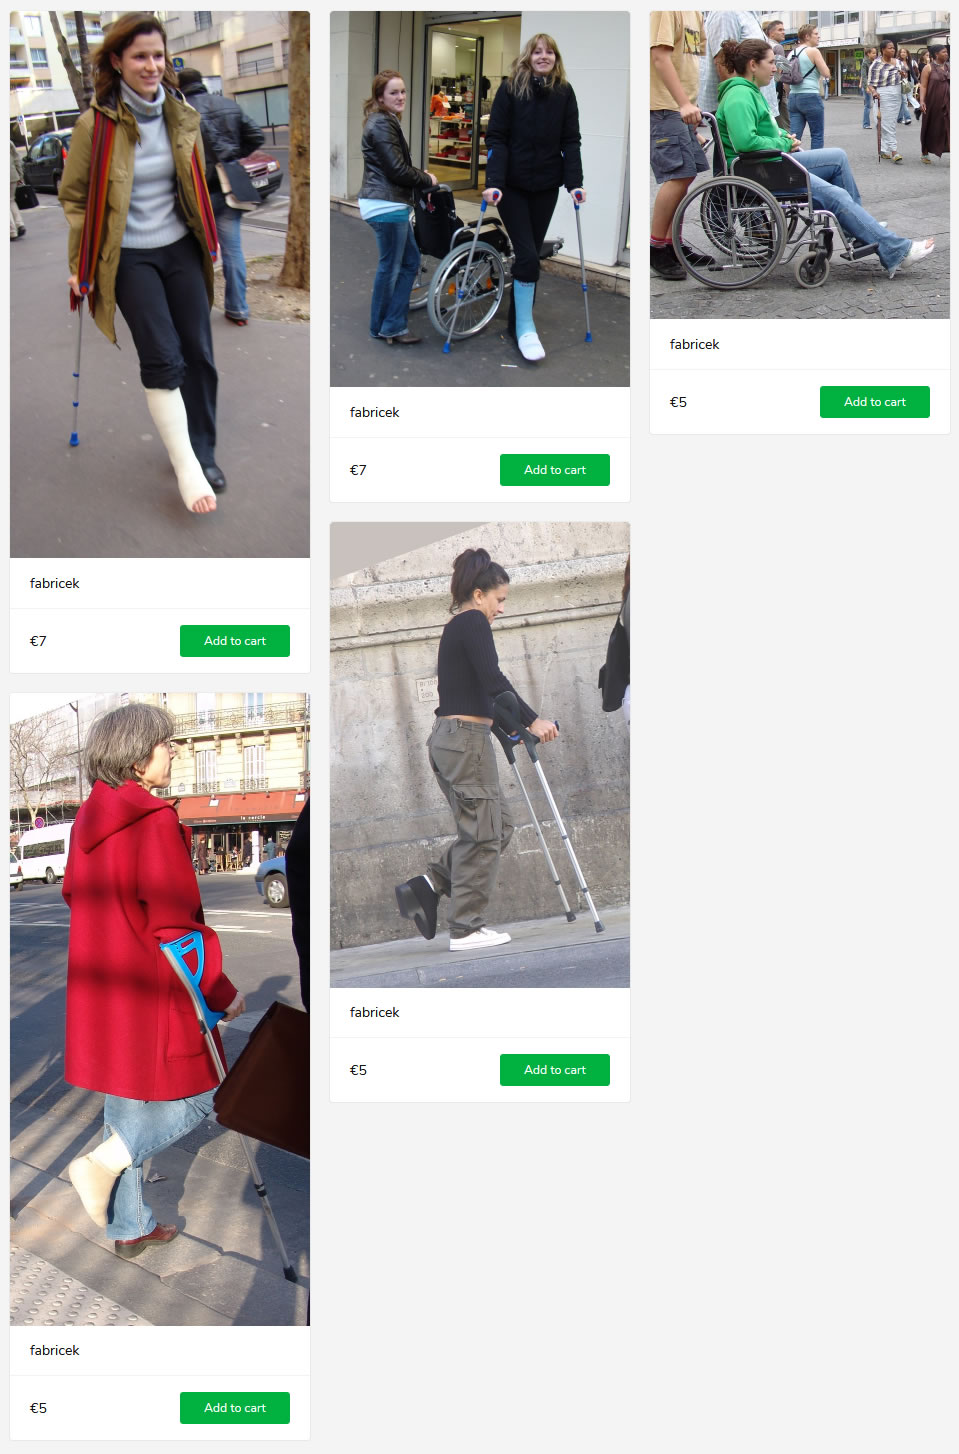 5 new sets (woman with cast/bandage on crutches and in wheelchair)